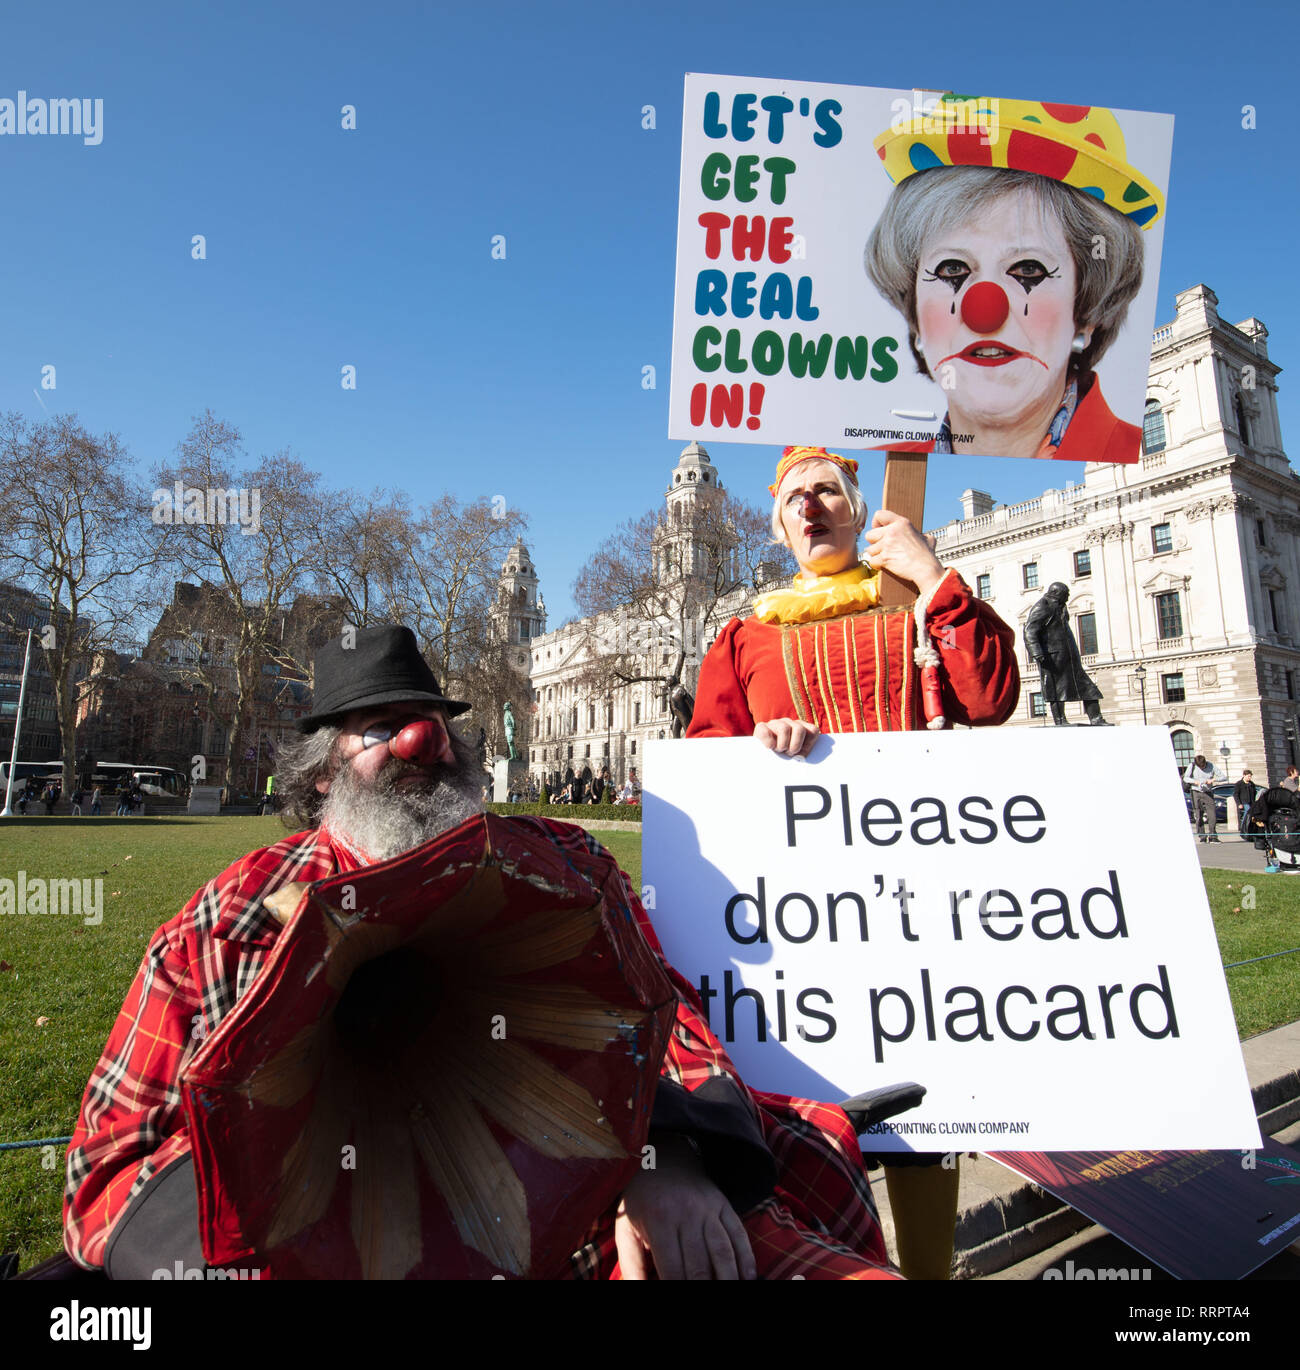 London, UK. 28th January 2019. Professor Eek (clown) and Professor Queen Bee (Judy on the right) protest outside Parliament, London, UK, today, feeling insulted that clowns and Punch and Judy are compared with those MP's inside the House of Commons. Credit: Joe Kuis /Alamy Live News - Stock Image